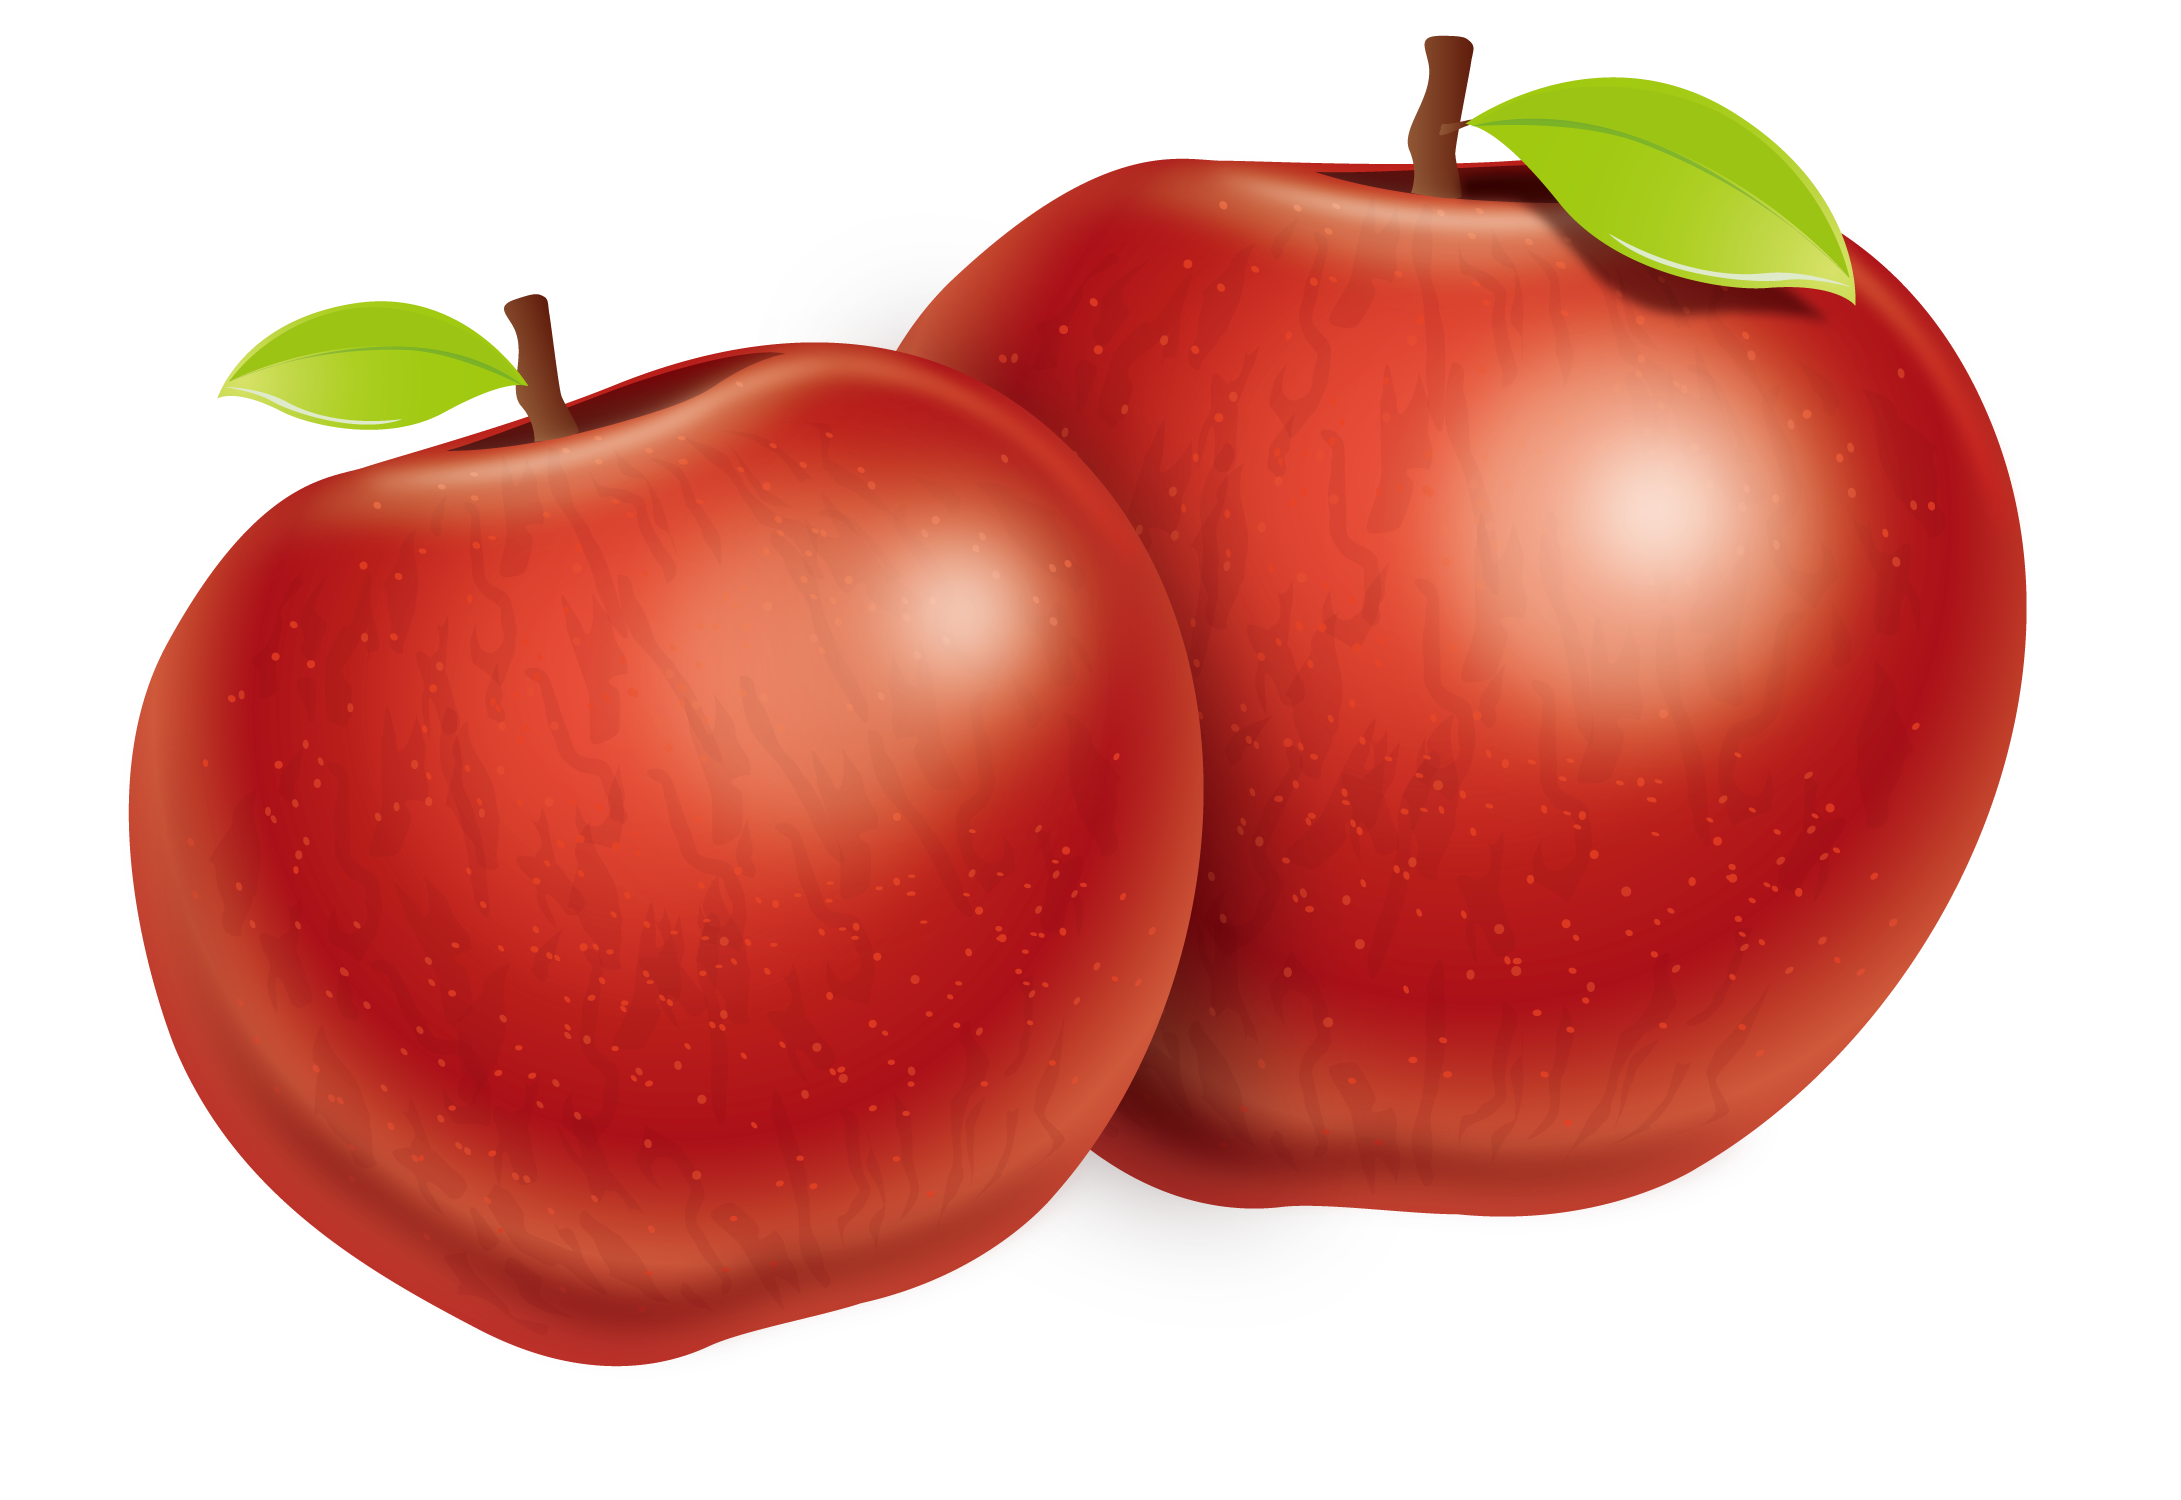 Tomato Apple Plum Two Fuji Vector Apples PNG Image